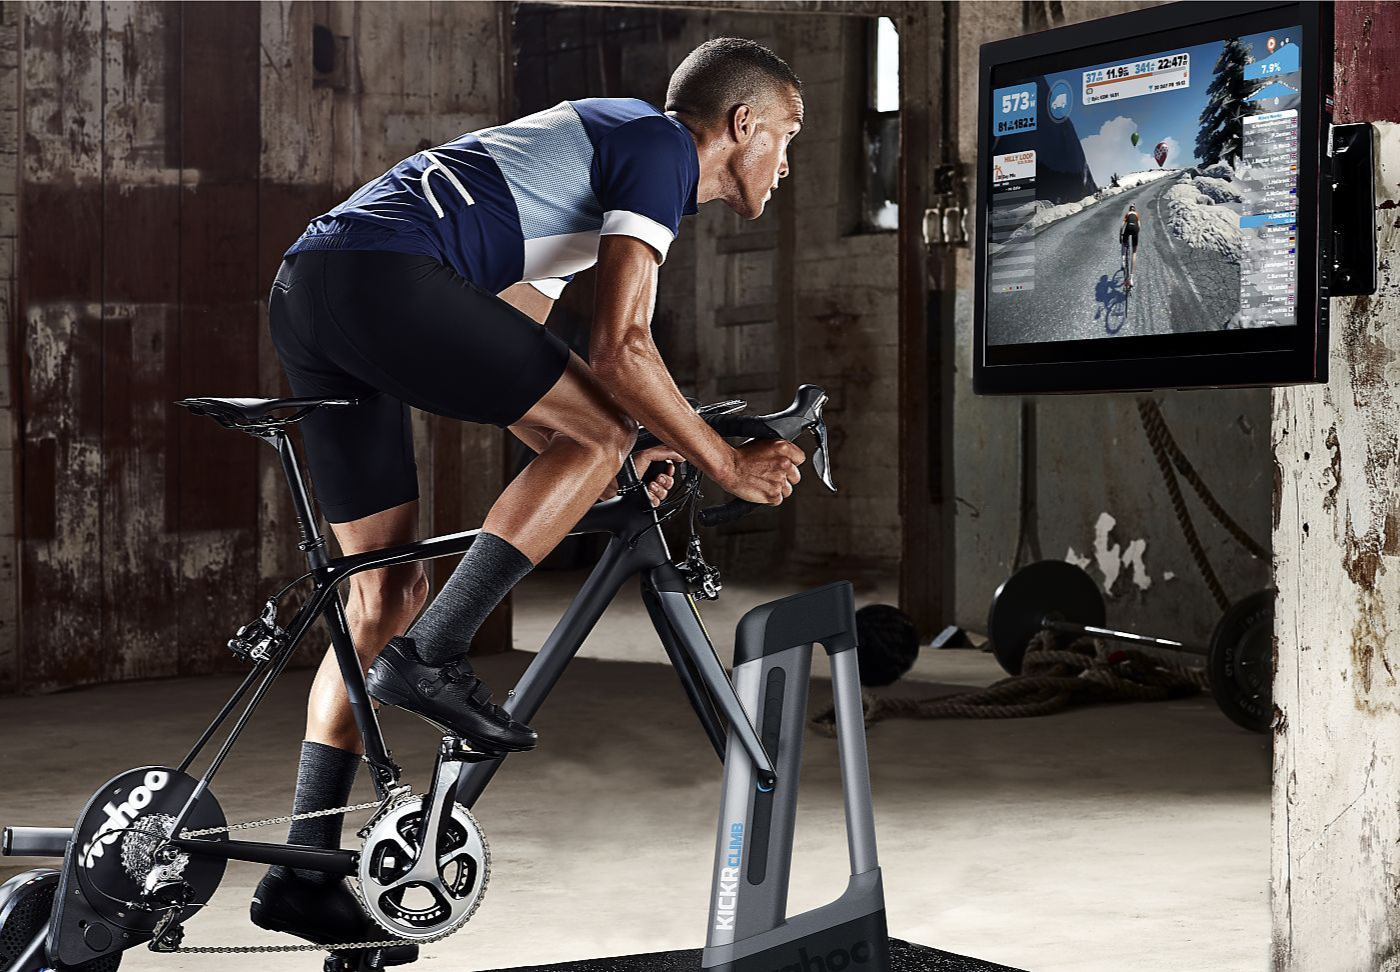 CapoVelo com | Wahoo Fitness Acquires The Sufferfest